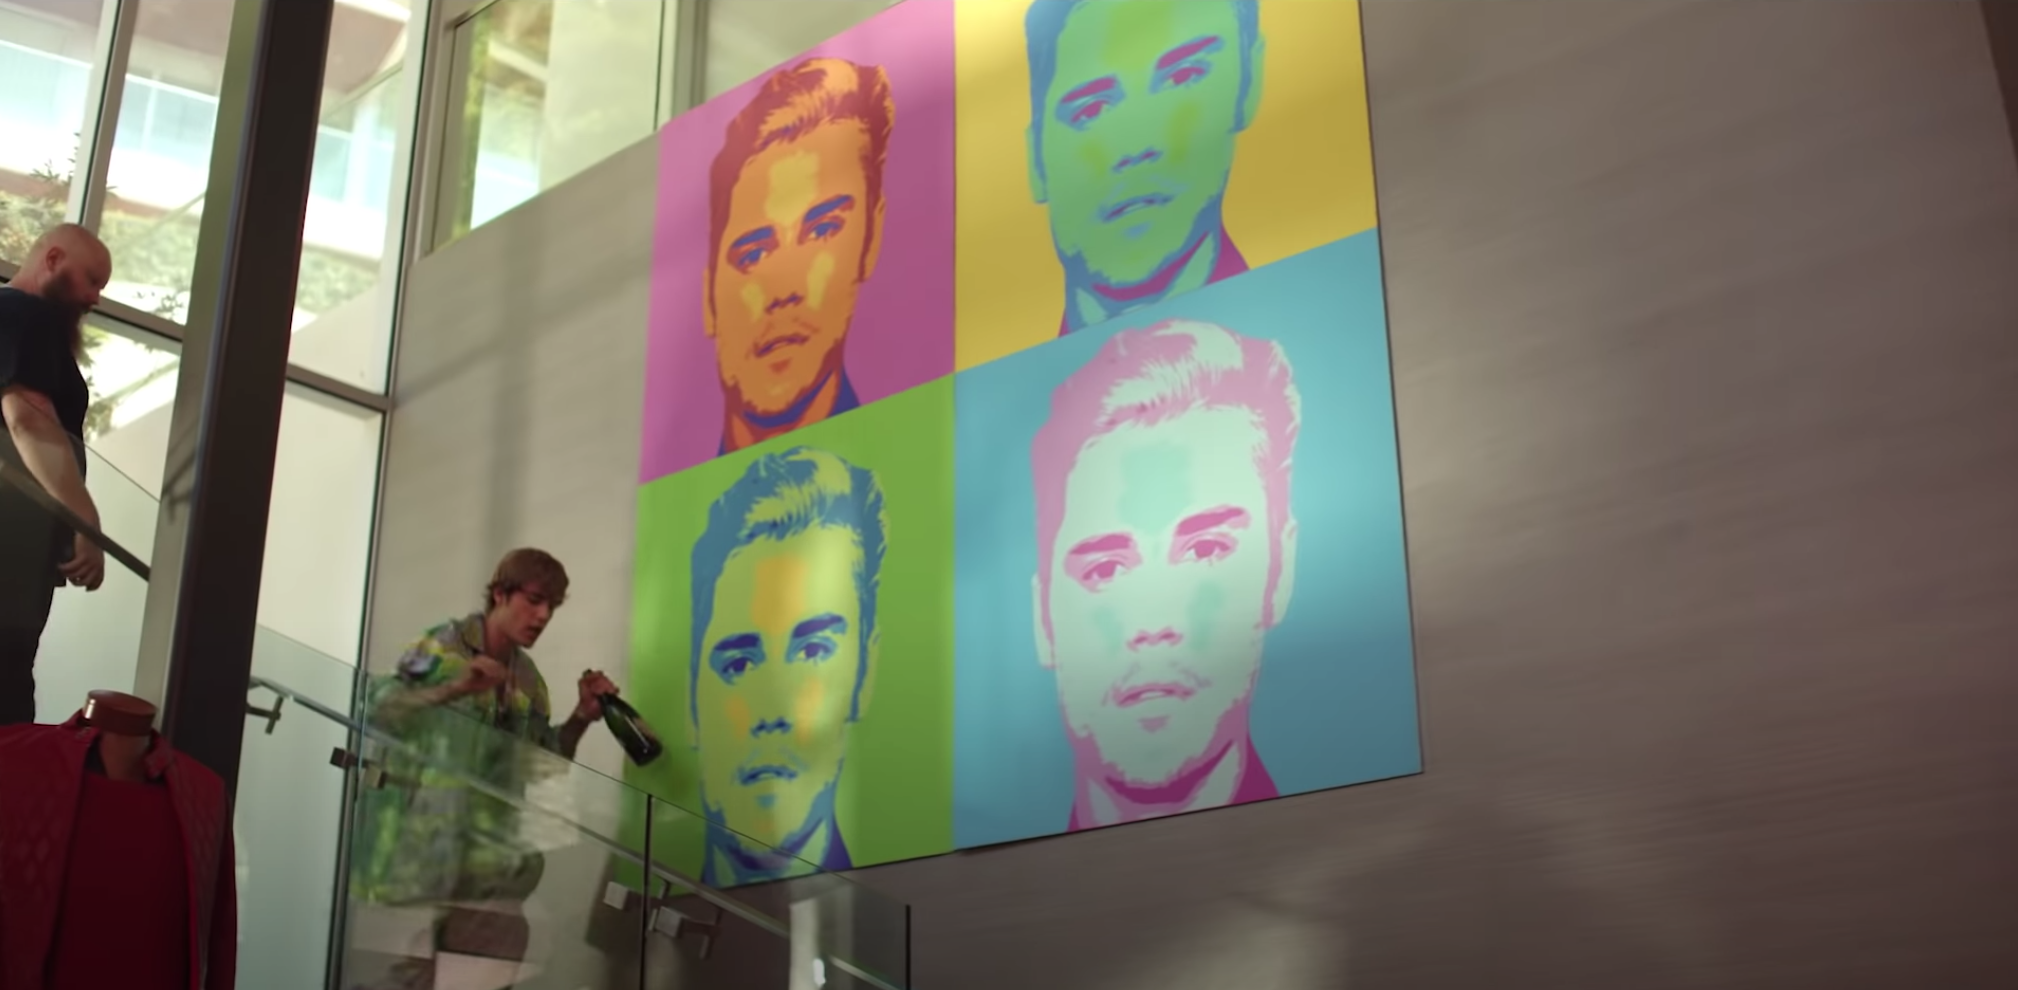 Justin walks by a colorful Andy Warhol-style pop art portraits of himself